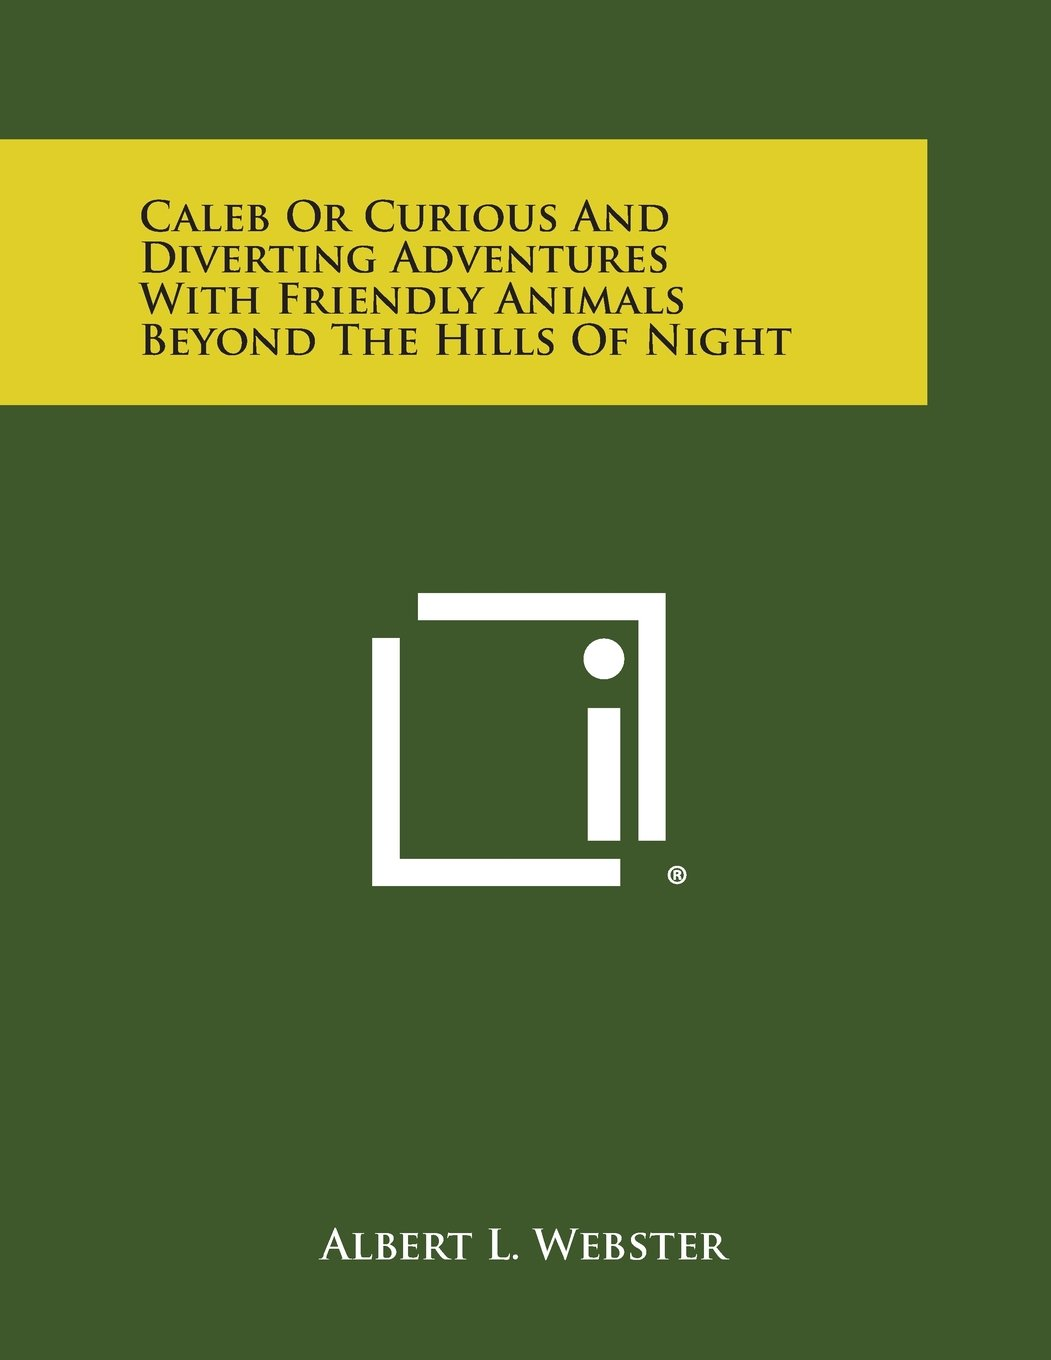 Download Caleb or Curious and Diverting Adventures with Friendly Animals Beyond the Hills of Night PDF